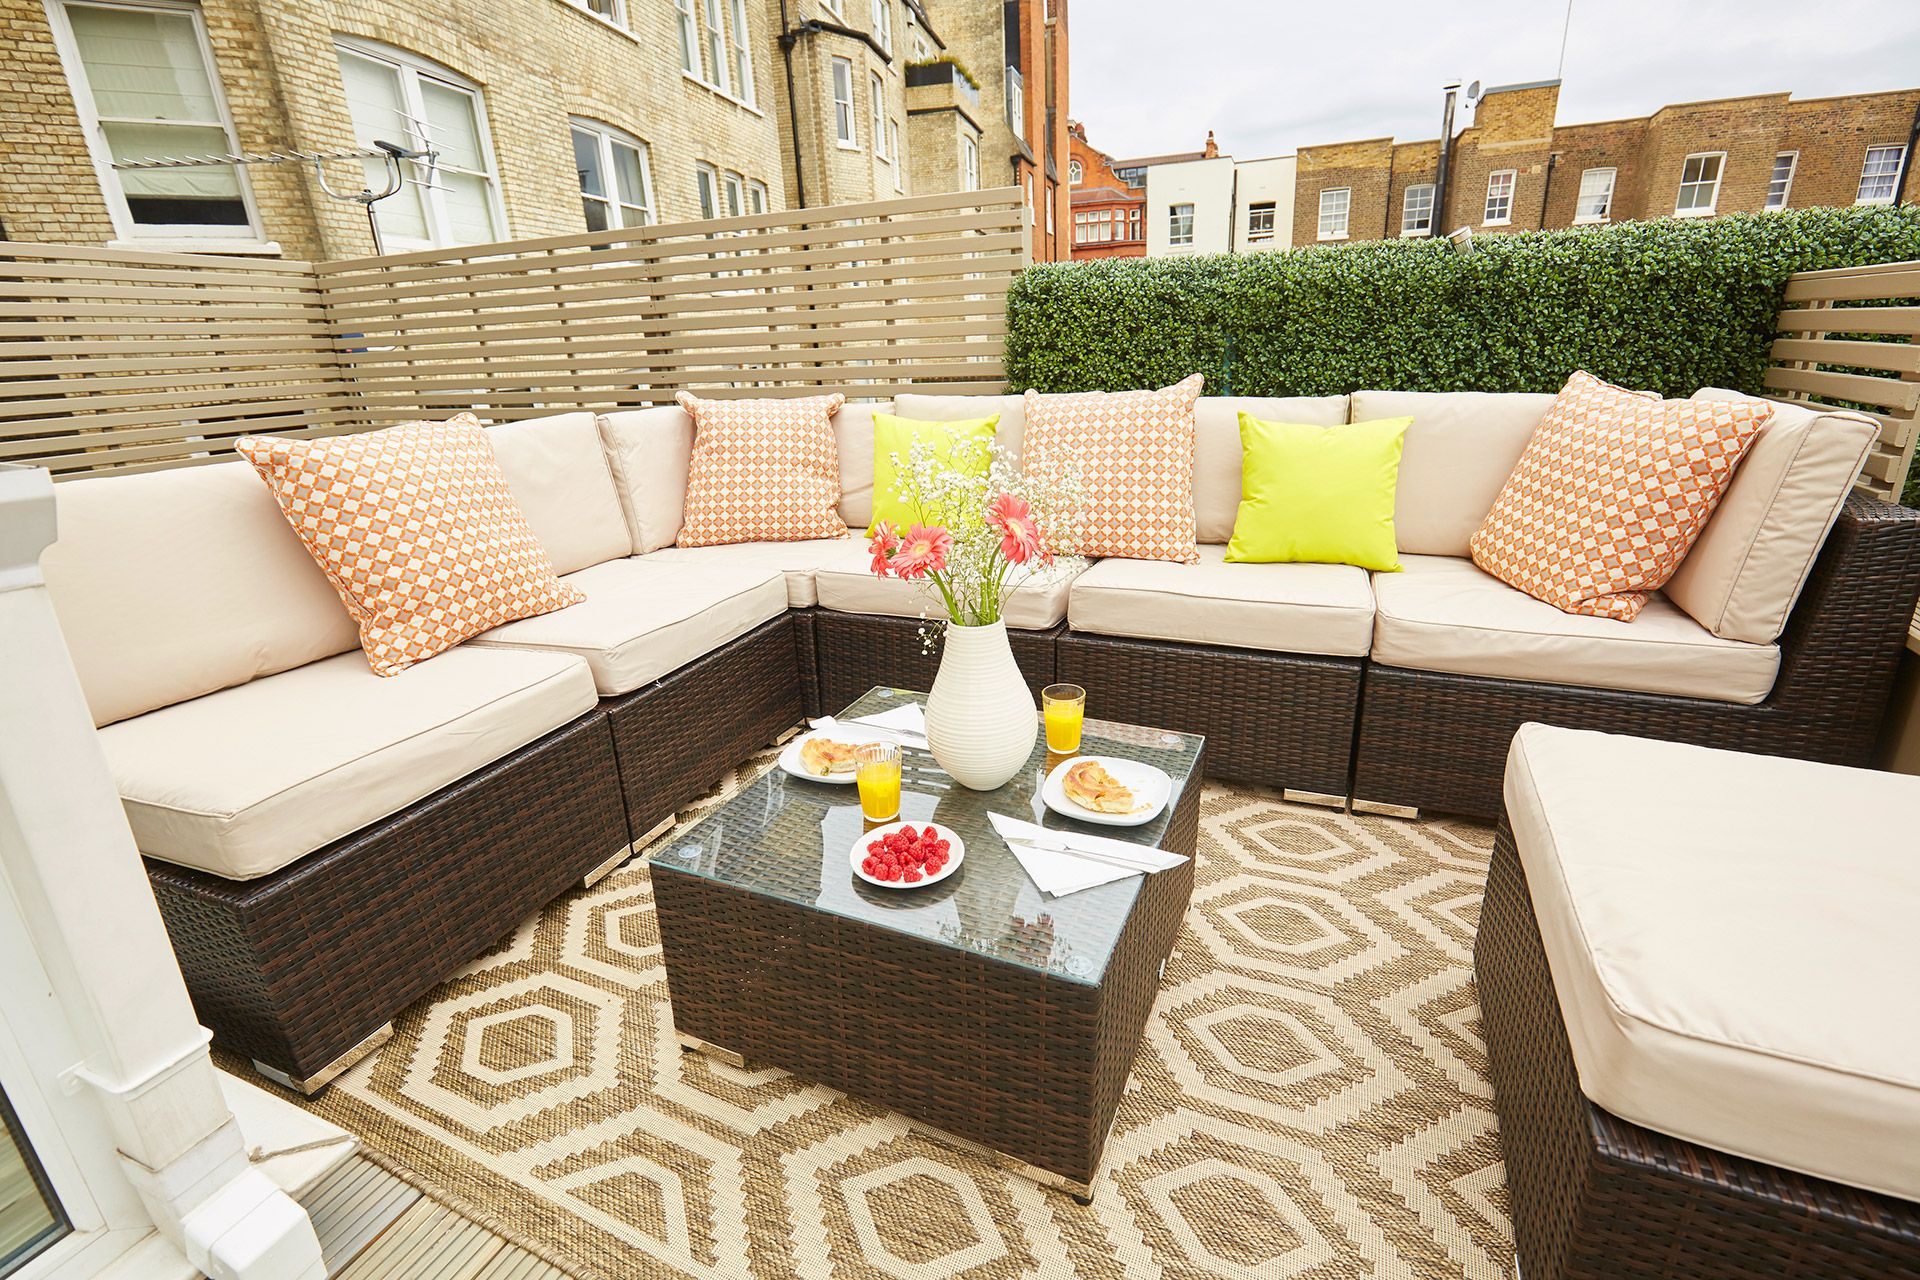 Comfortable seating on the terrace of the Danebury vacation rental offered by London Perfect